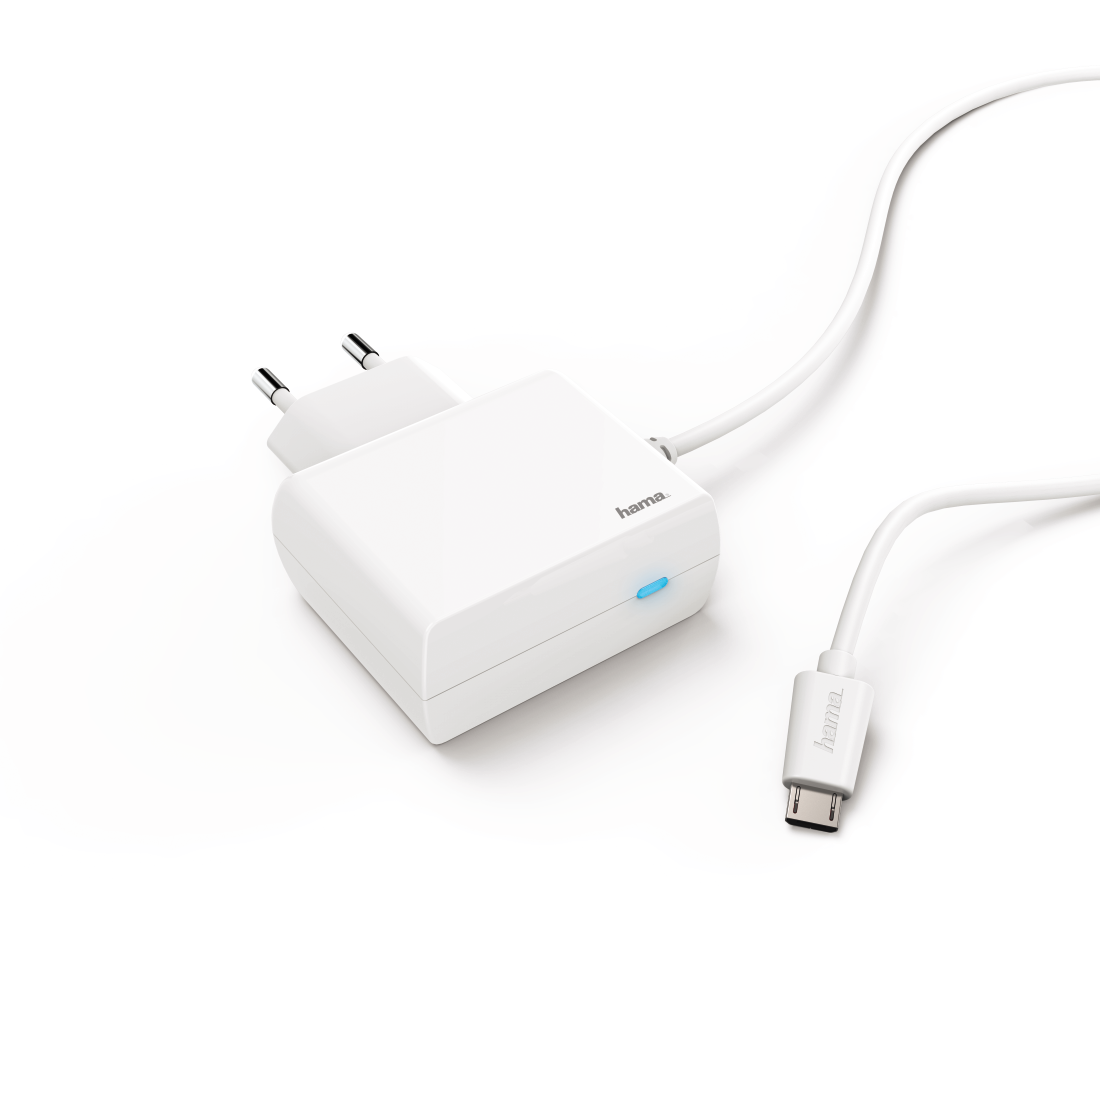 abx2 High-Res Image 2 - Hama, Chargeur micro-USB, 2,4 A, blanc